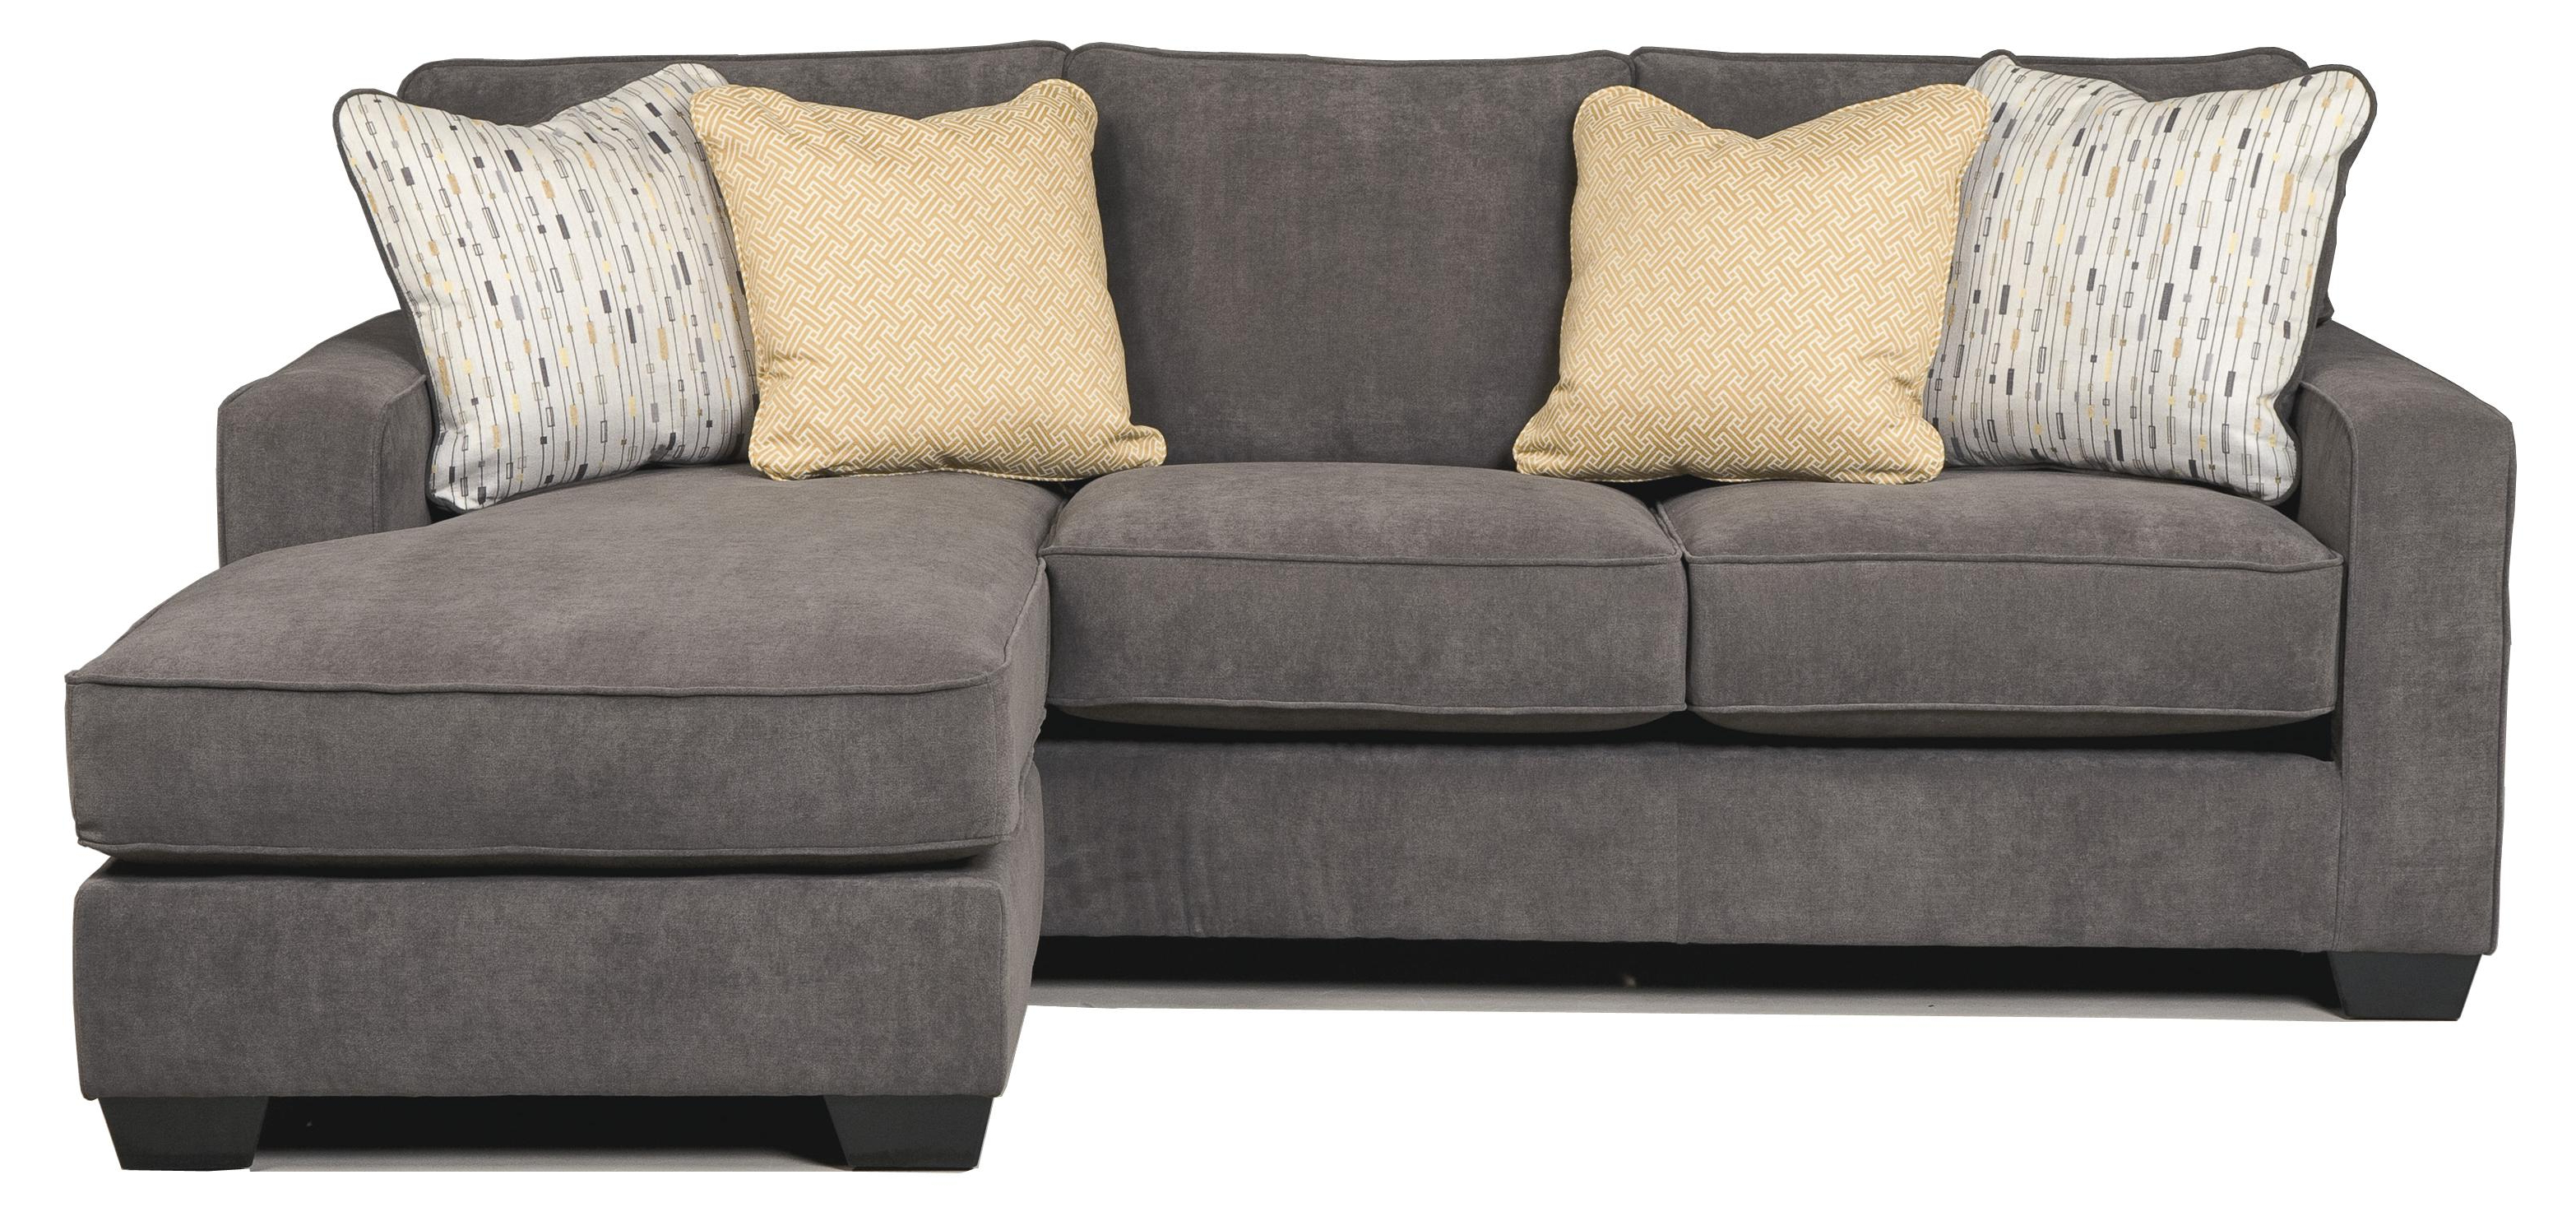 Harper Foam 3 Piece Sectionals With Raf Chaise With 2018 Harper Contemporary Sofa Chaise With Track Arms & Left Or Right (View 15 of 20)